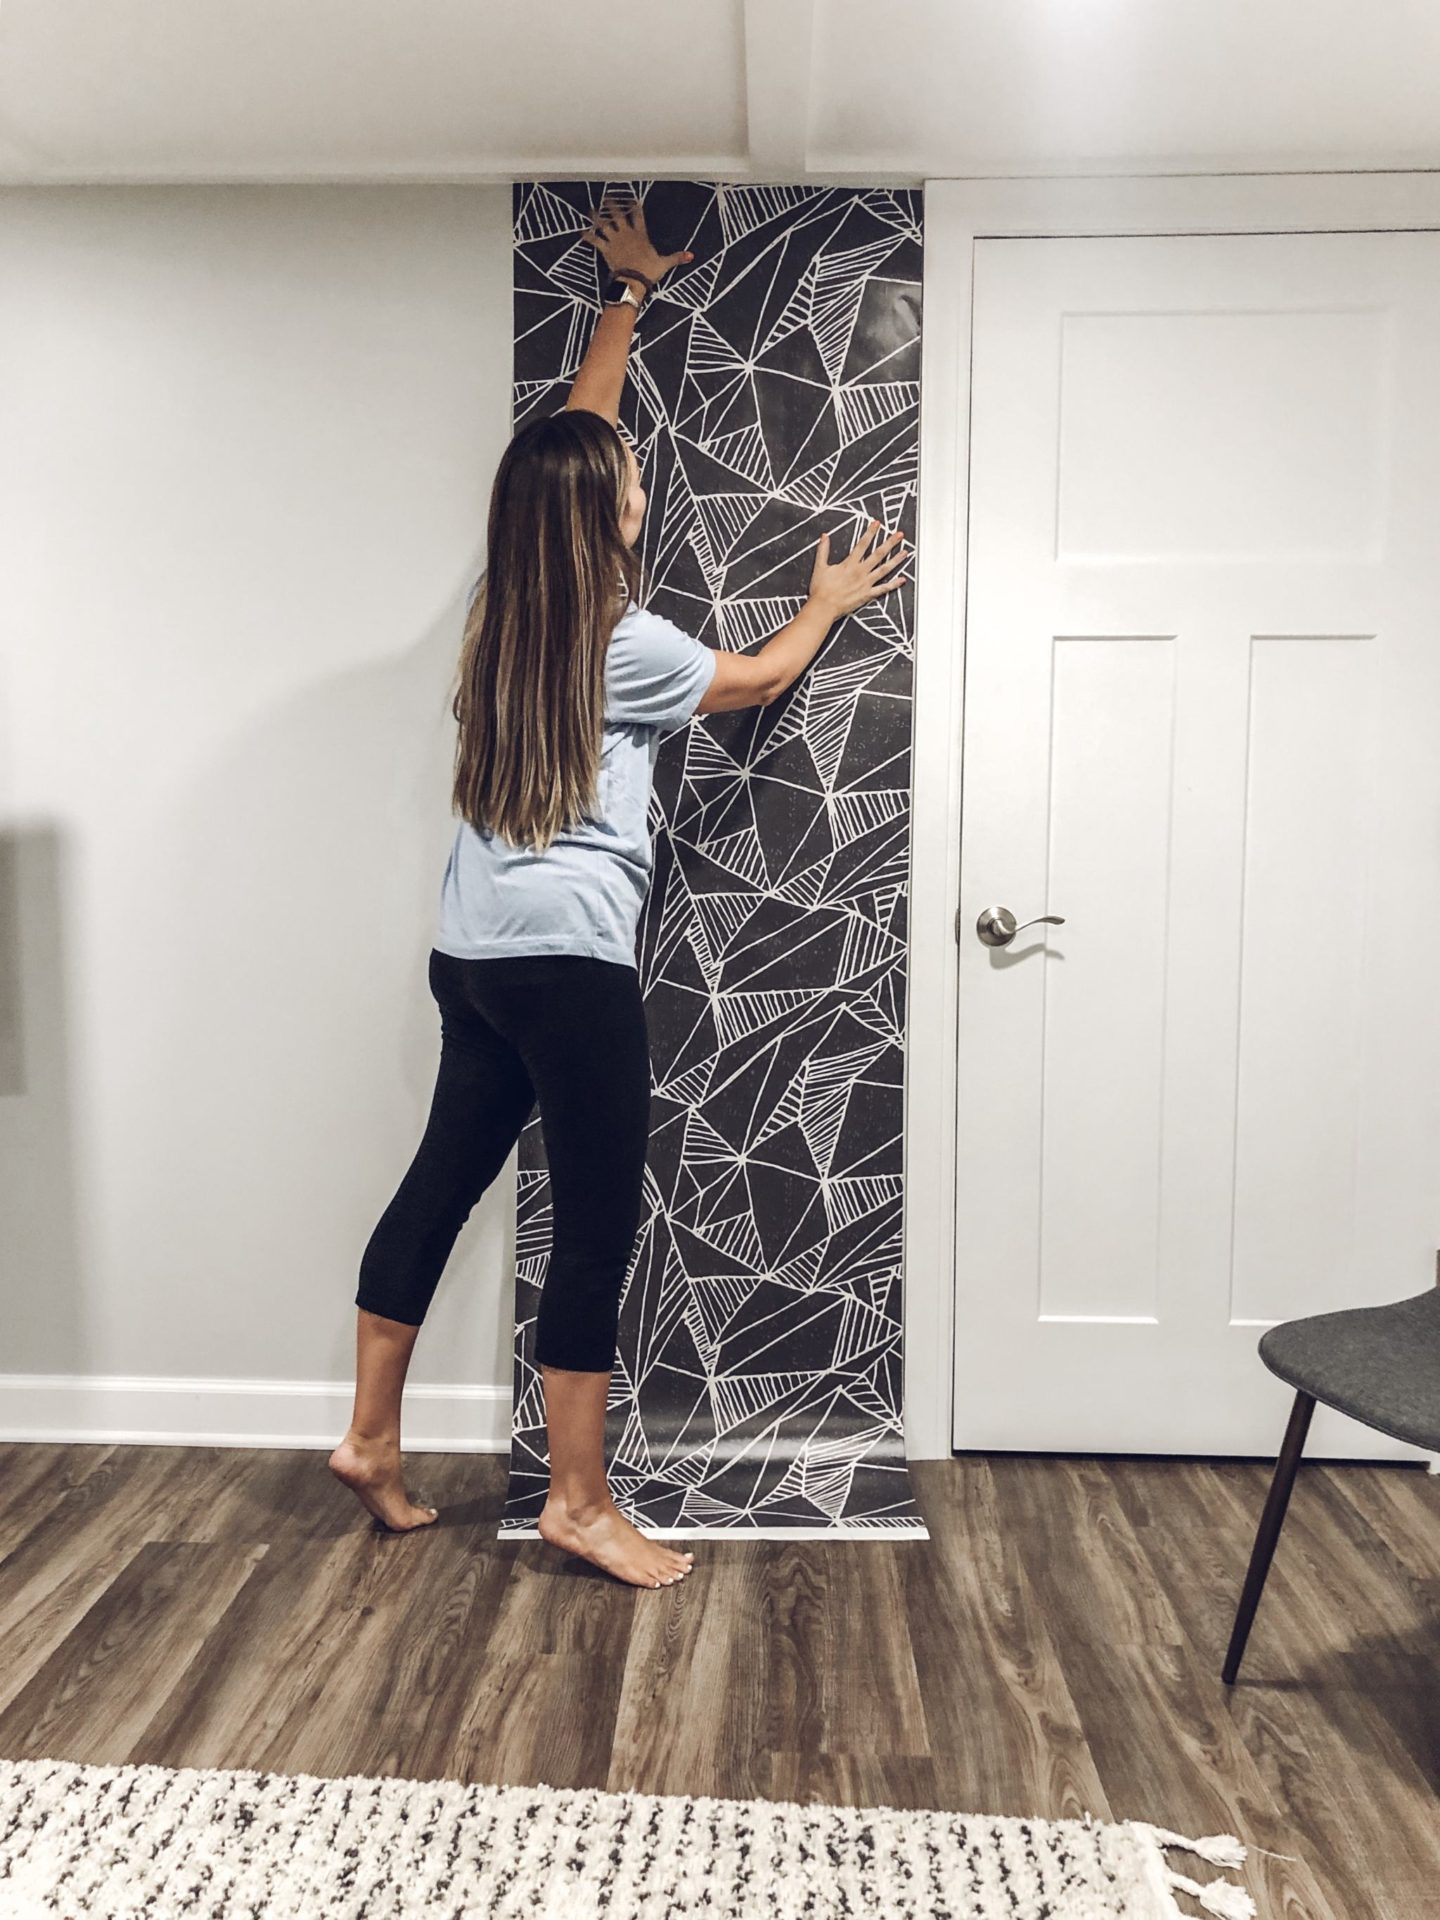 installing wallpaper, Game Room Makeover with Wallpaper